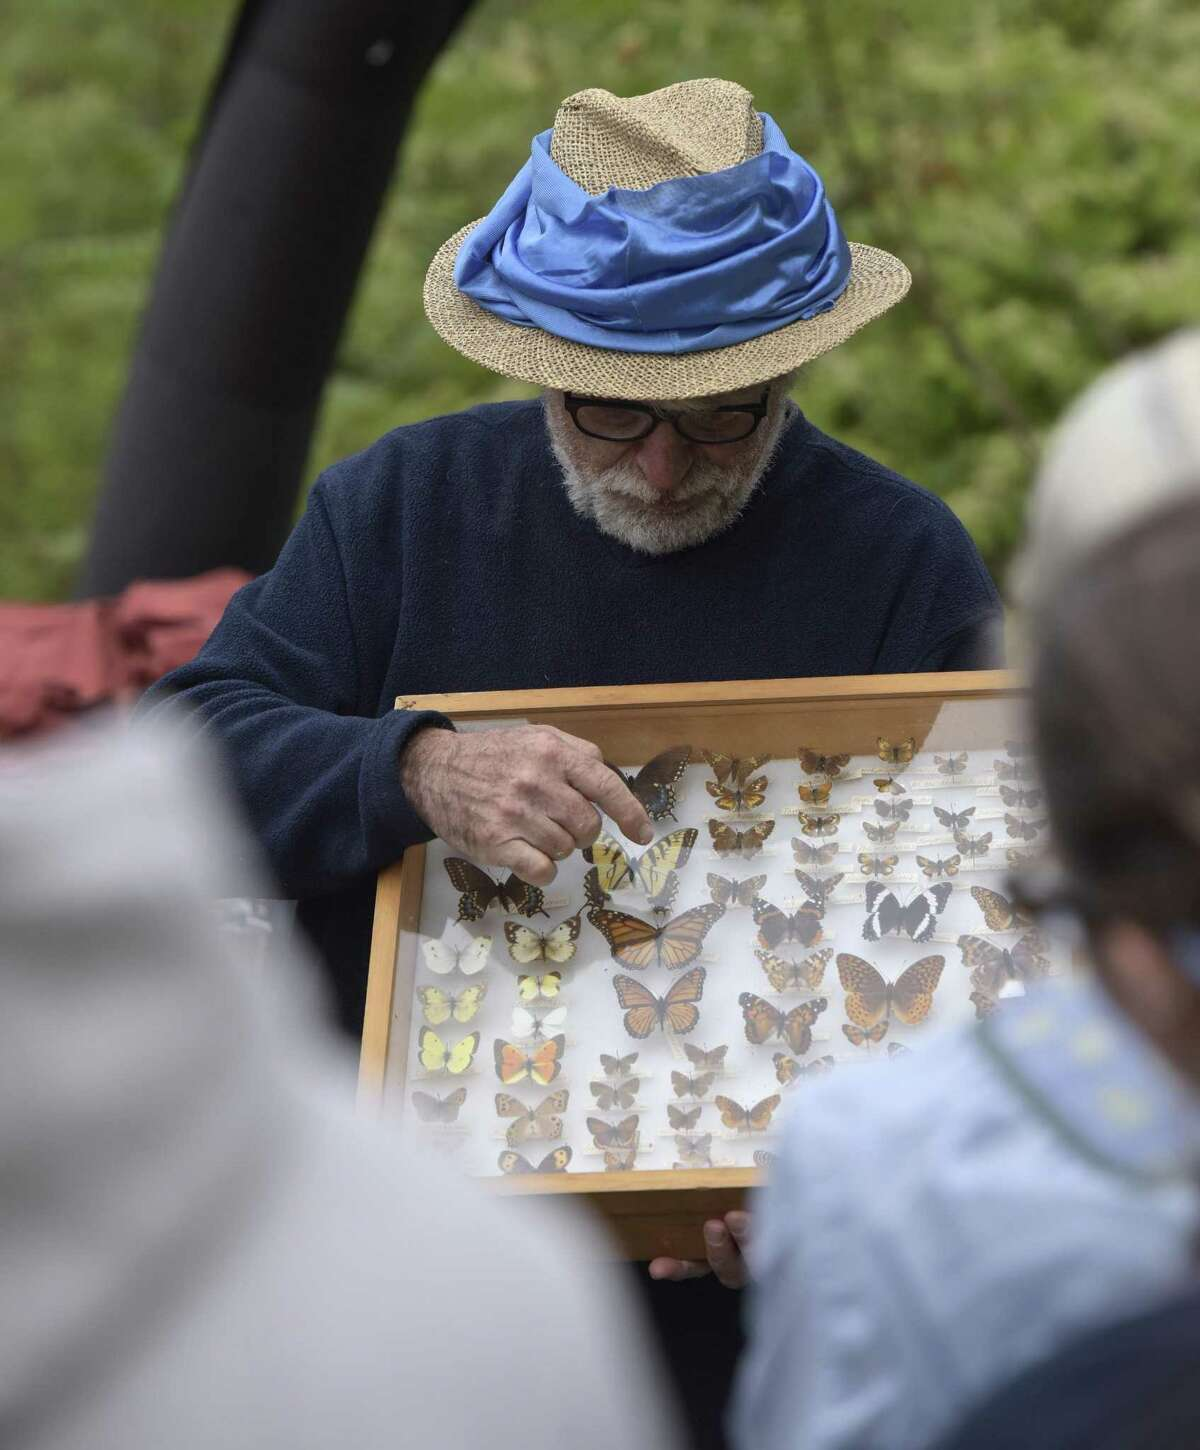 Lepidopterist Victor DeMasi shows volunteers working on the Norwalk River Valley Trail examples of butterflies that can be found in the area, Saturday morning in Ridgefield. September 30, 2017, in Ridgefield, Conn. The event was part of National Public Lands Day.